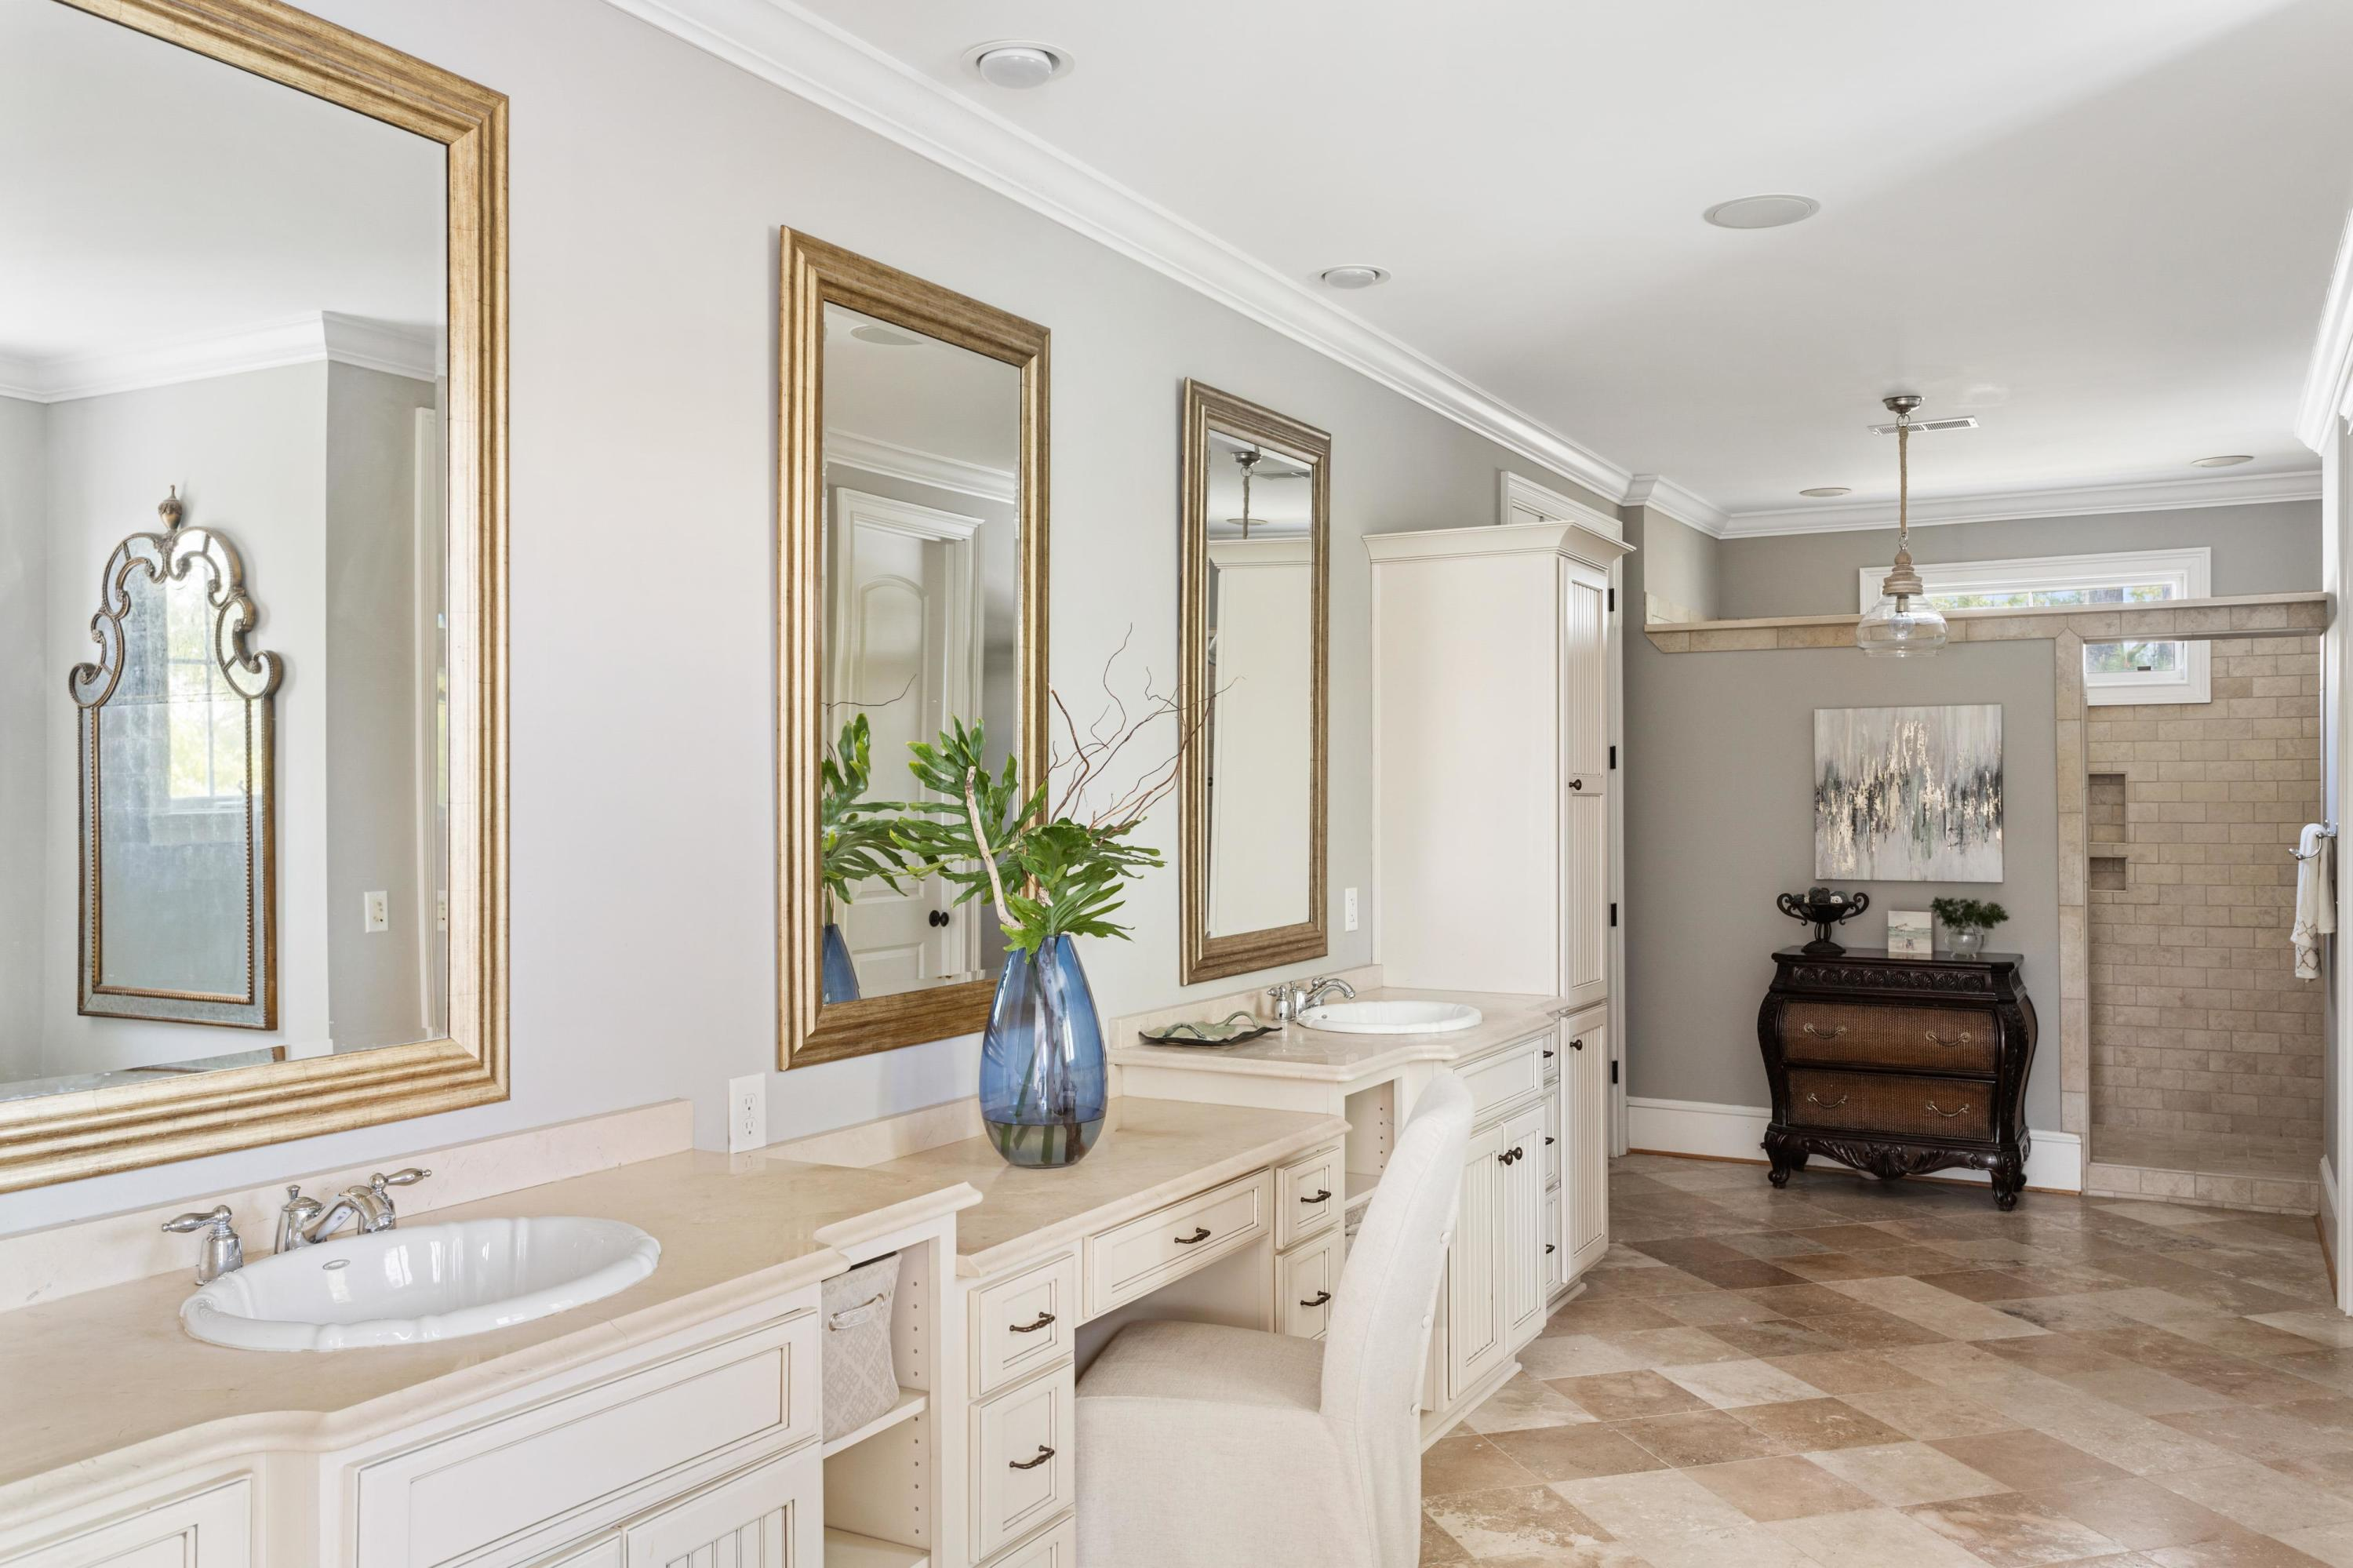 Rivertowne Country Club Homes For Sale - 1629 Rivertowne Country Club, Mount Pleasant, SC - 26